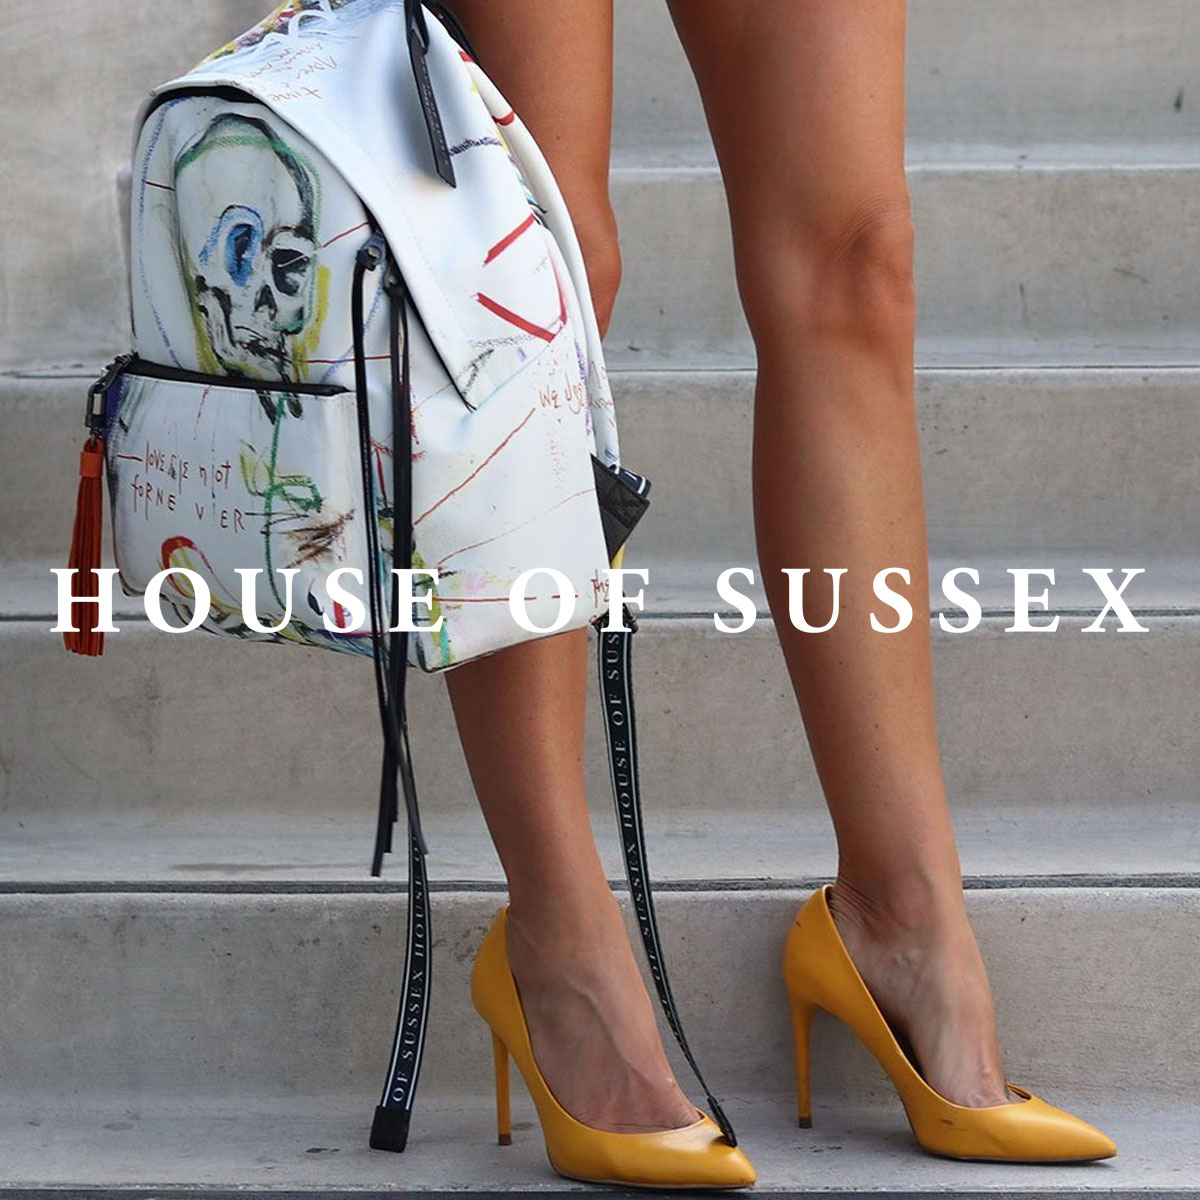 House of Sussex Web Design & Photography